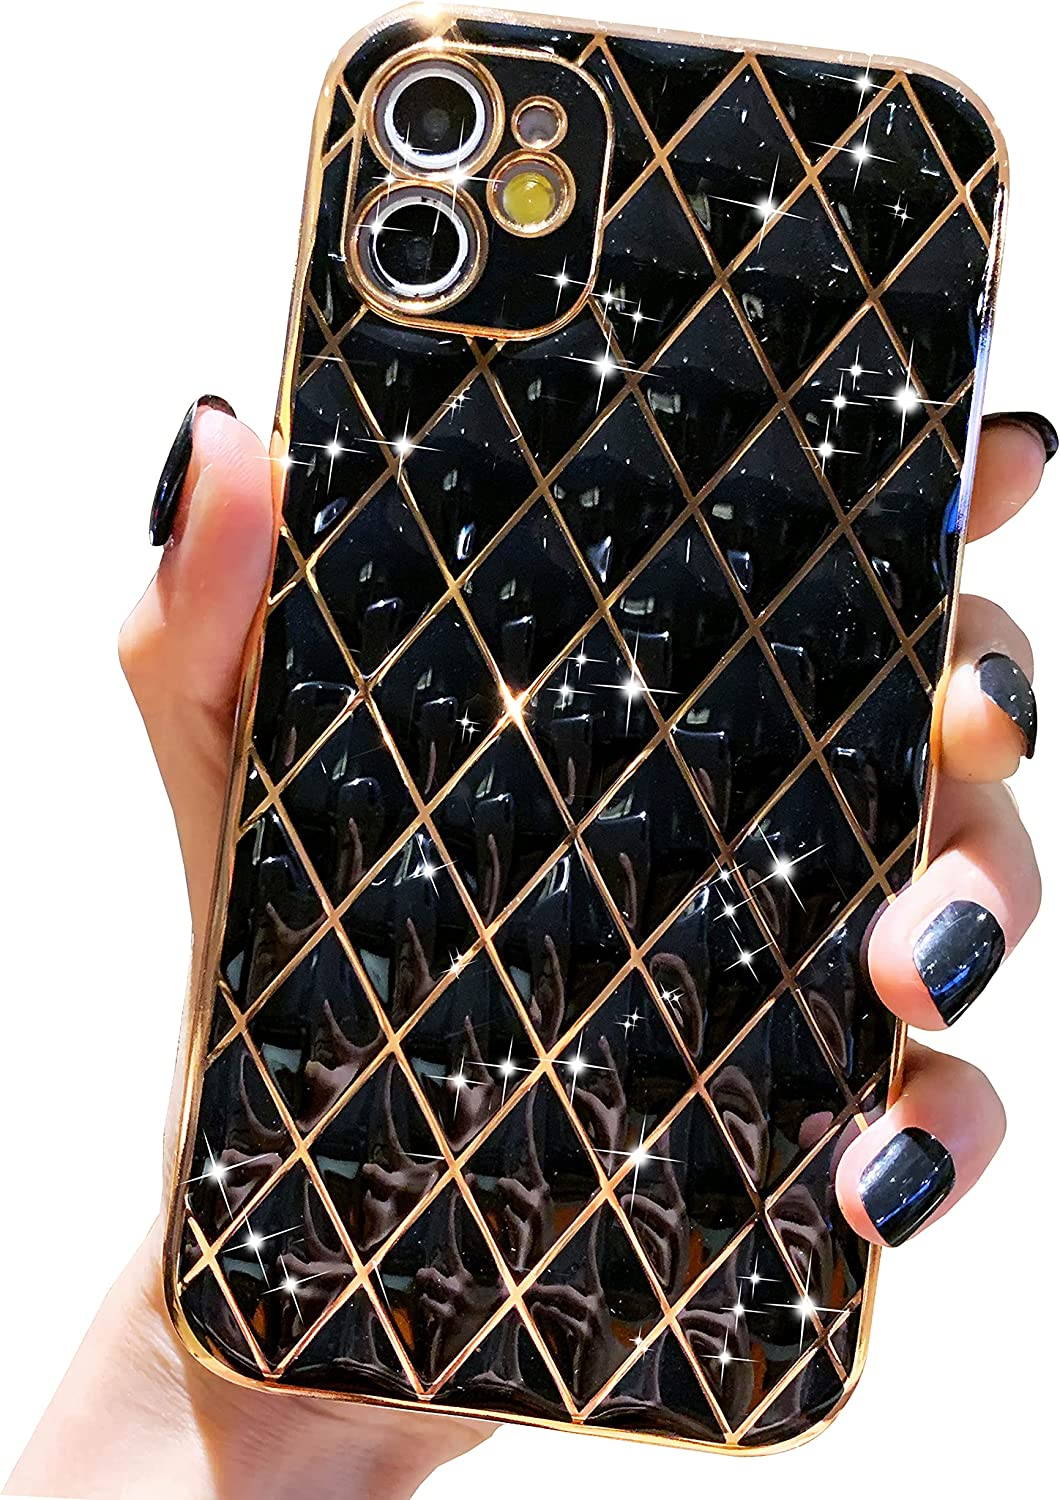 Anynve Compatible with iPhone 12 Case, Glitter Sparkle Luxurly Plating Case, Full Camera Lens Protection Shockproof Edge Bumper Slim TPU Silicone iPhone 12 Phone Case [6.1 inches] -Black